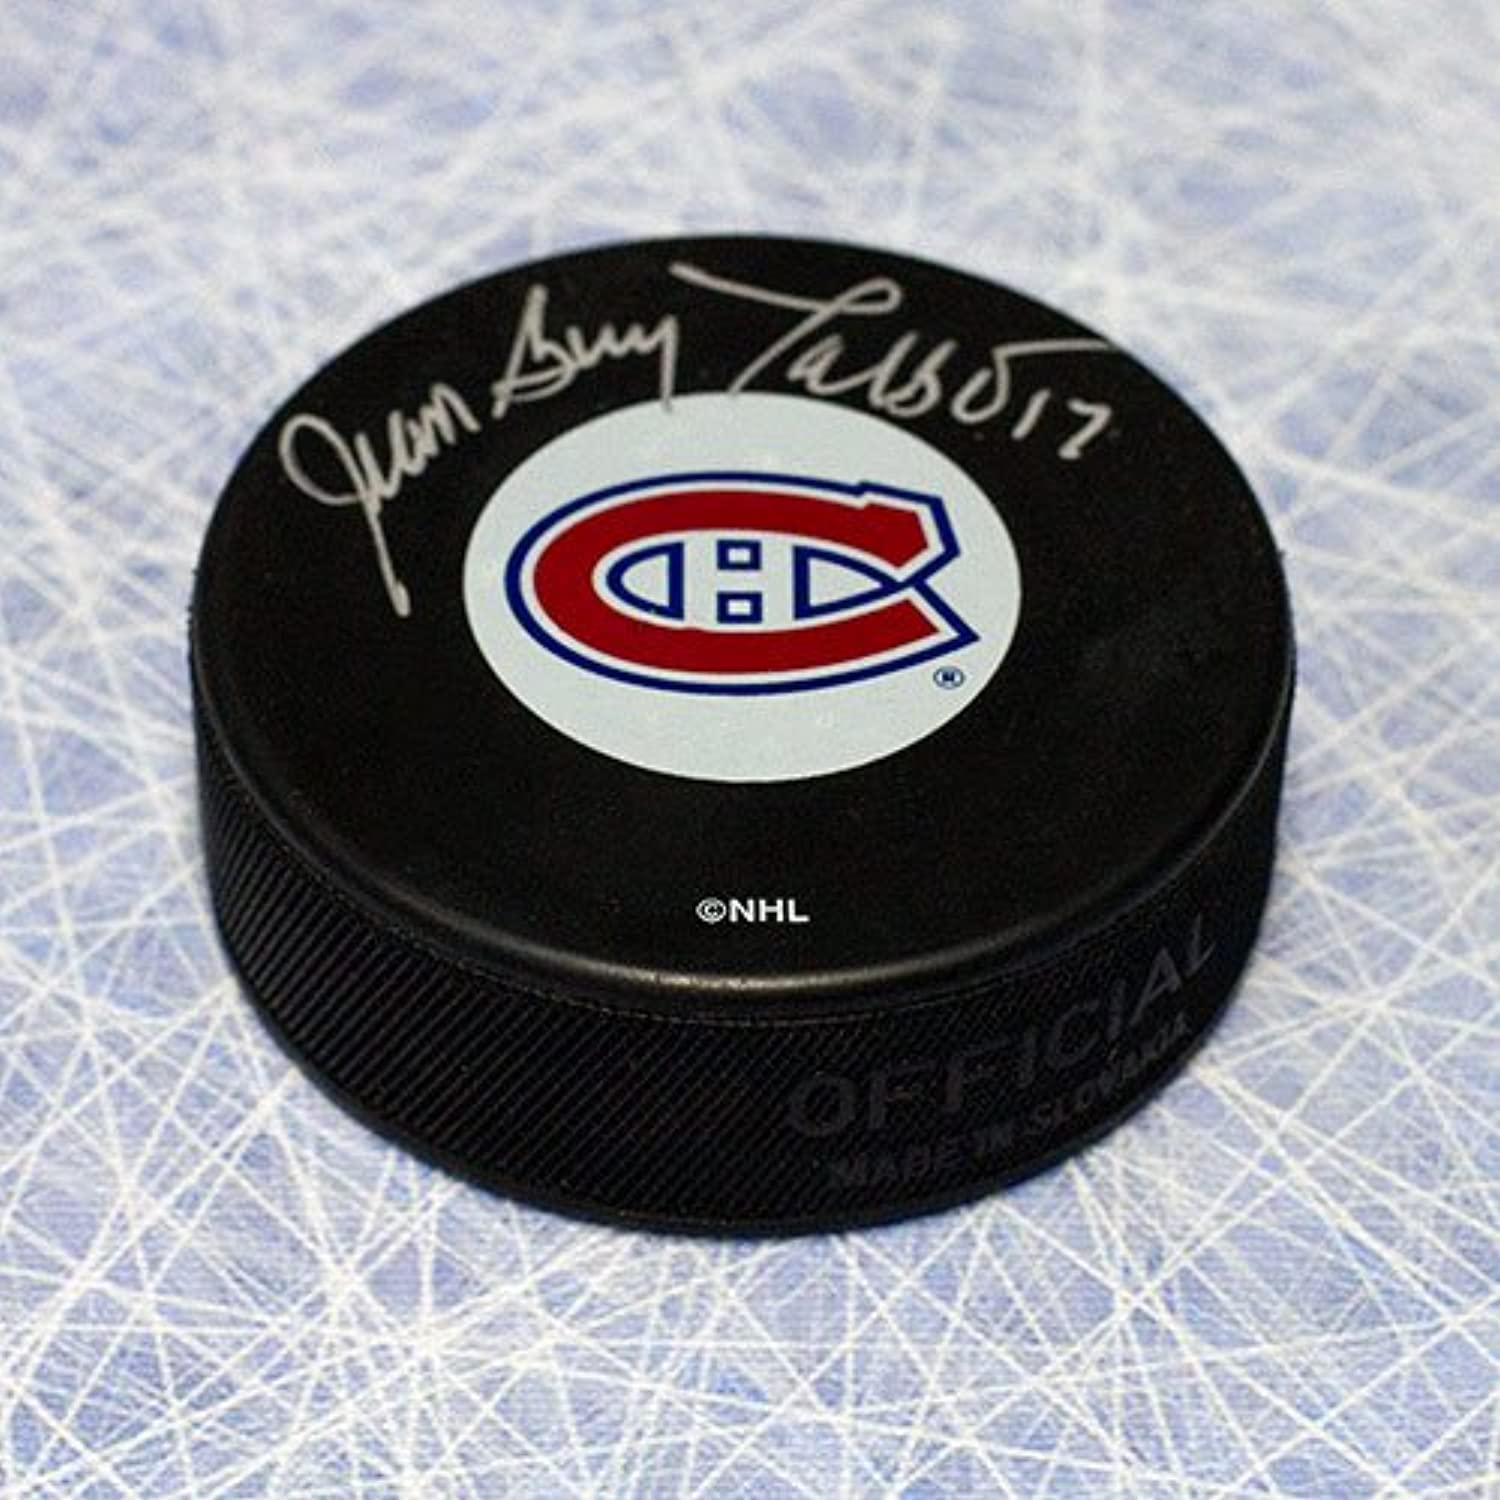 JeanGuy Talbot Montreal Canadiens Autographed Hockey Puck